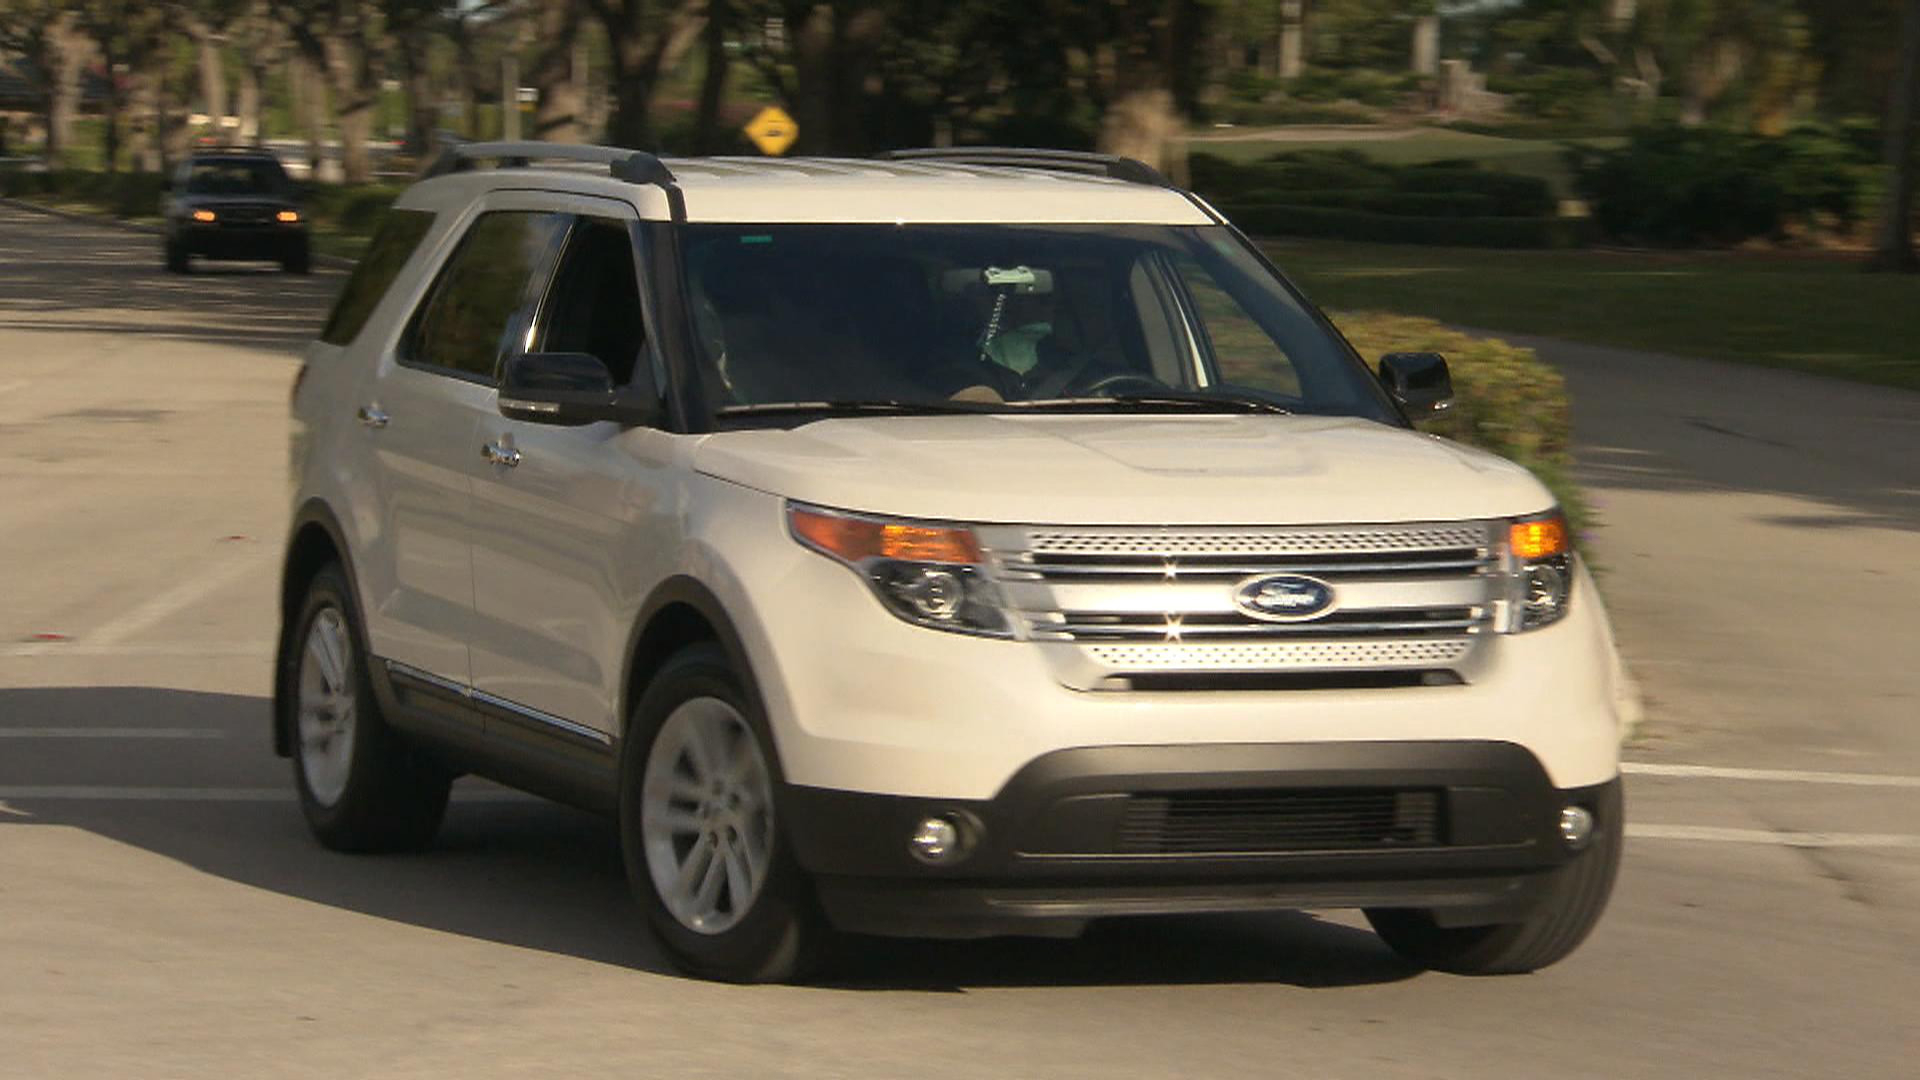 Watch CBS This Morning Ford Explorer leaking exhaust Full show